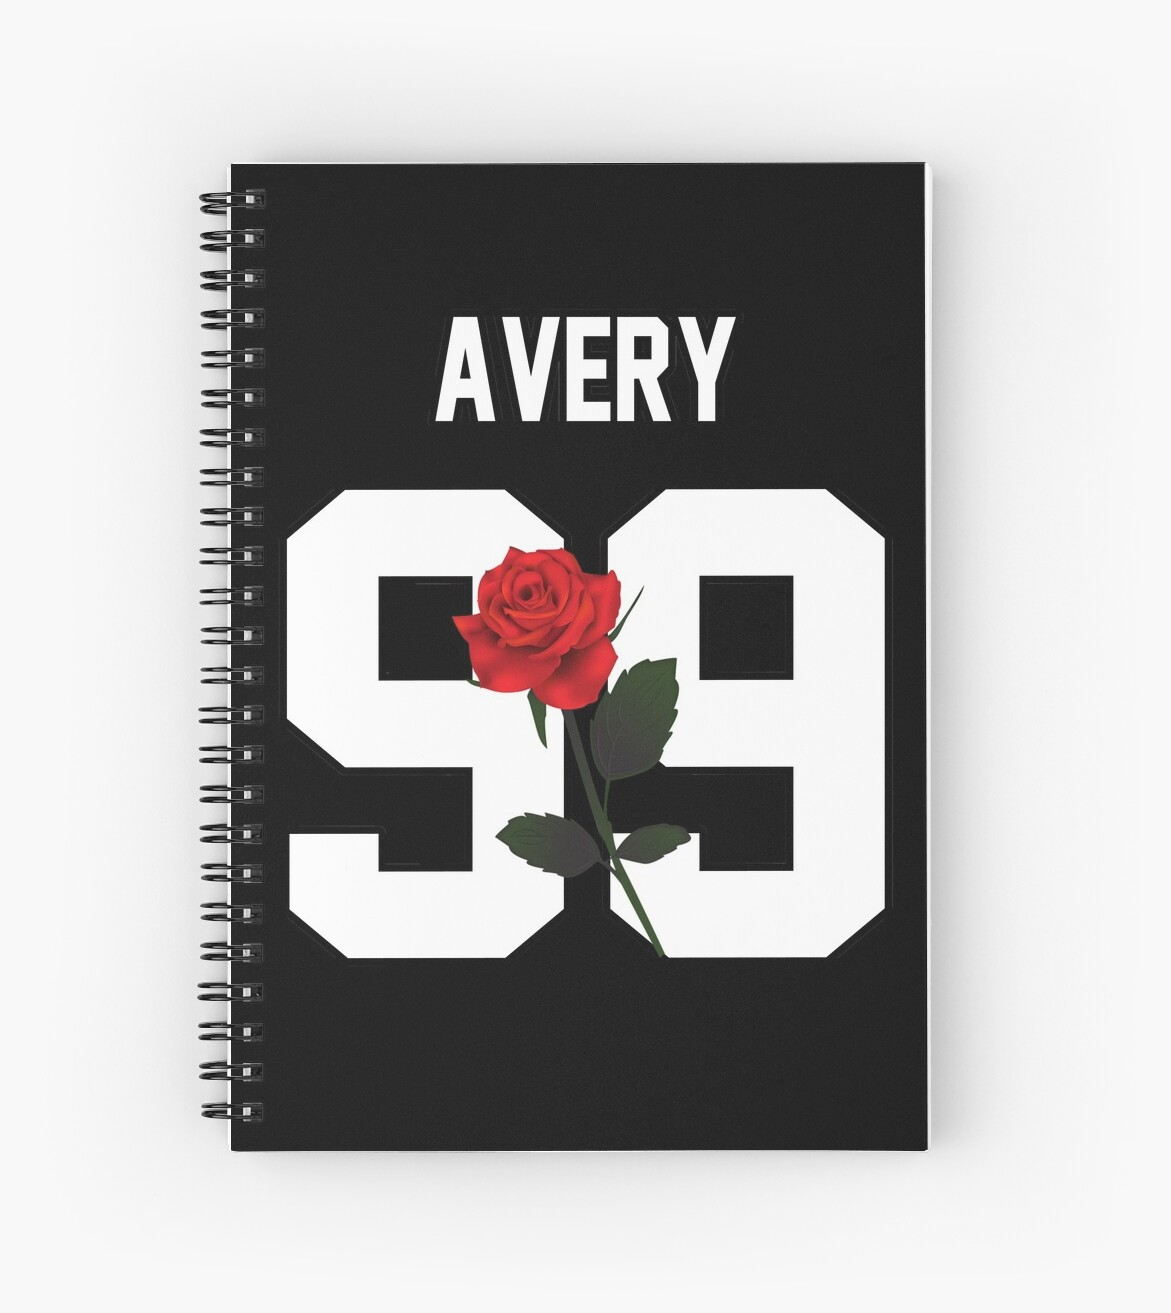 Red Flower Wall Stickers Quot Jack Avery Rose Quot Spiral Notebooks By Amandamedeiros